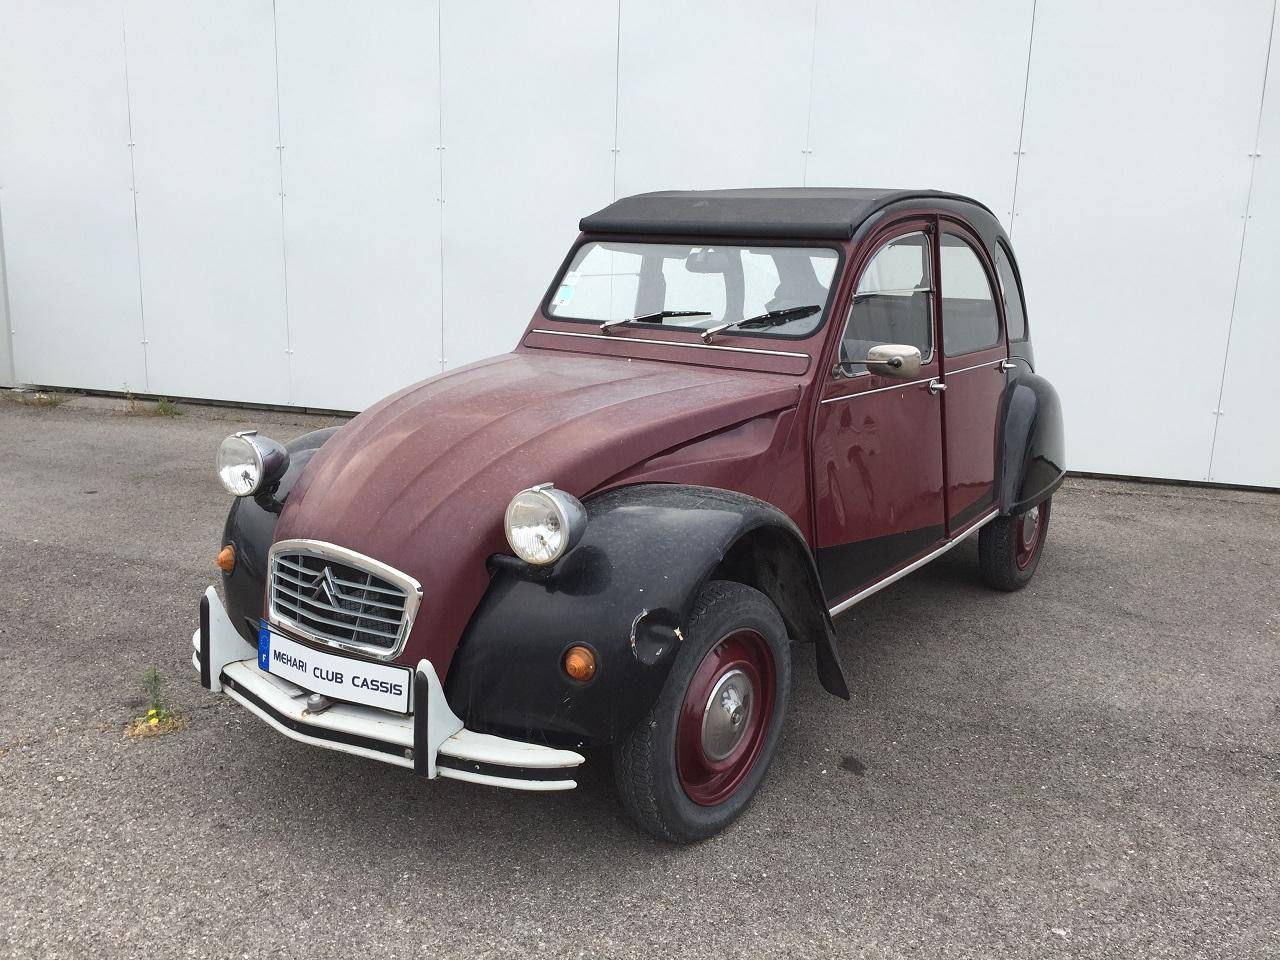 2cv charleston bordeaux 1984 mehari 2cv club cassis. Black Bedroom Furniture Sets. Home Design Ideas